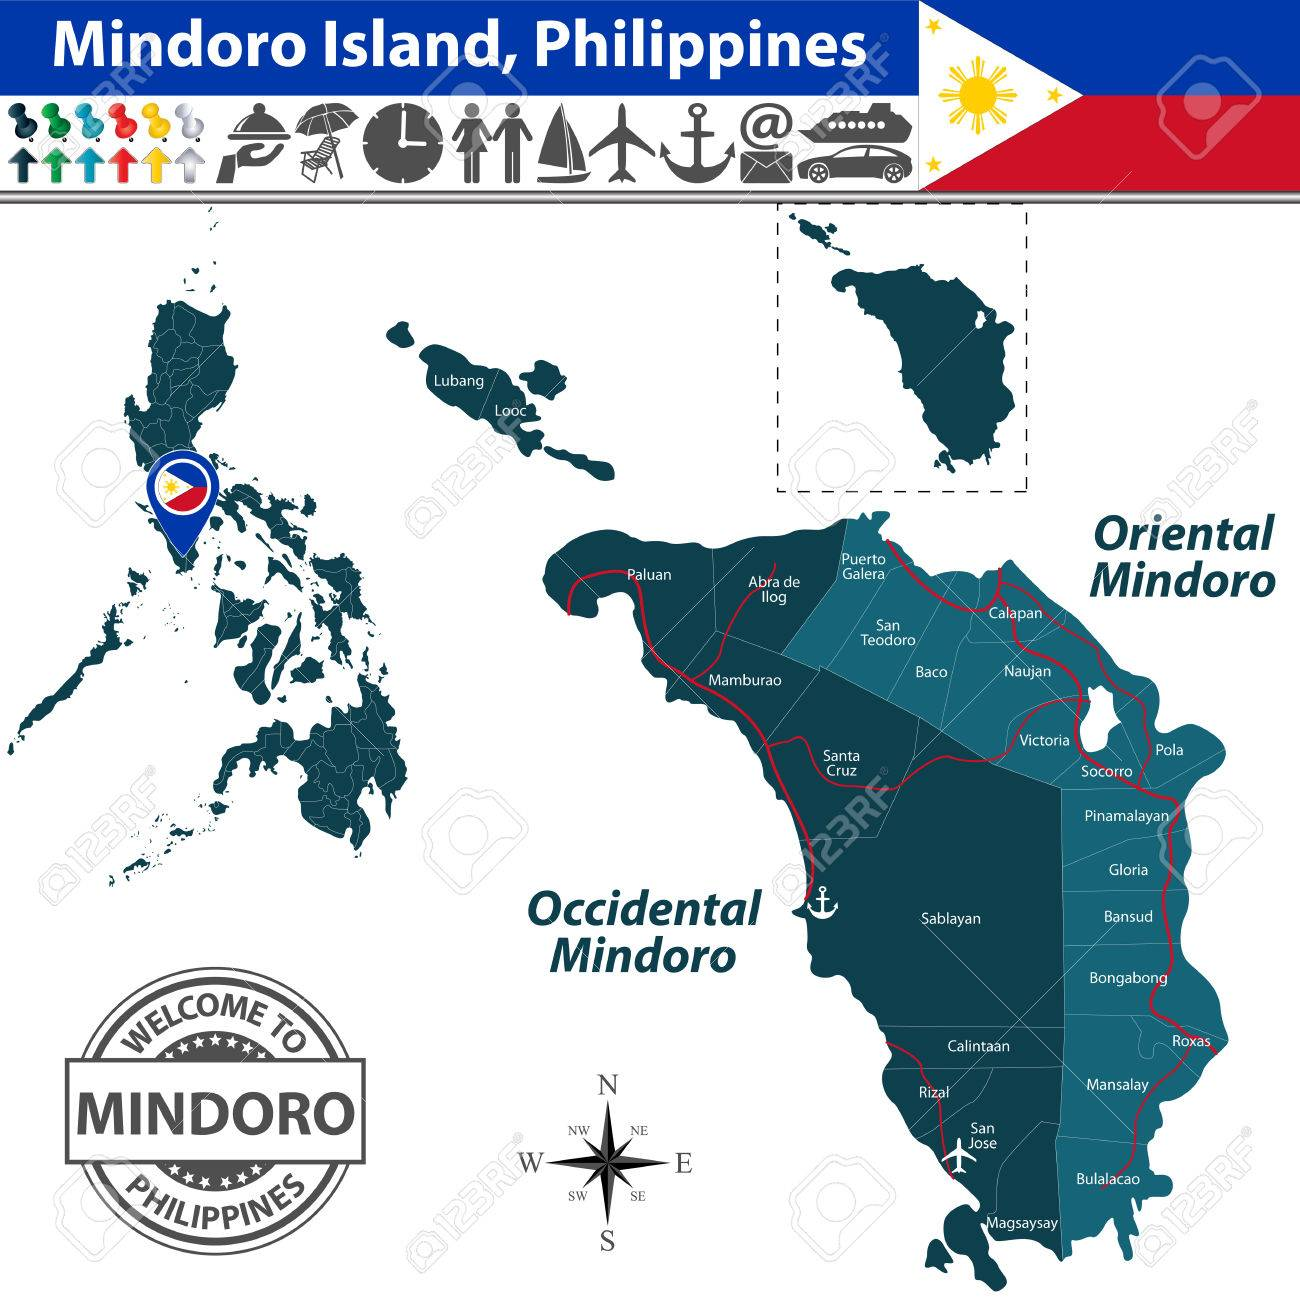 Mindoro Island Philippines Map Contains Provinces Oriental